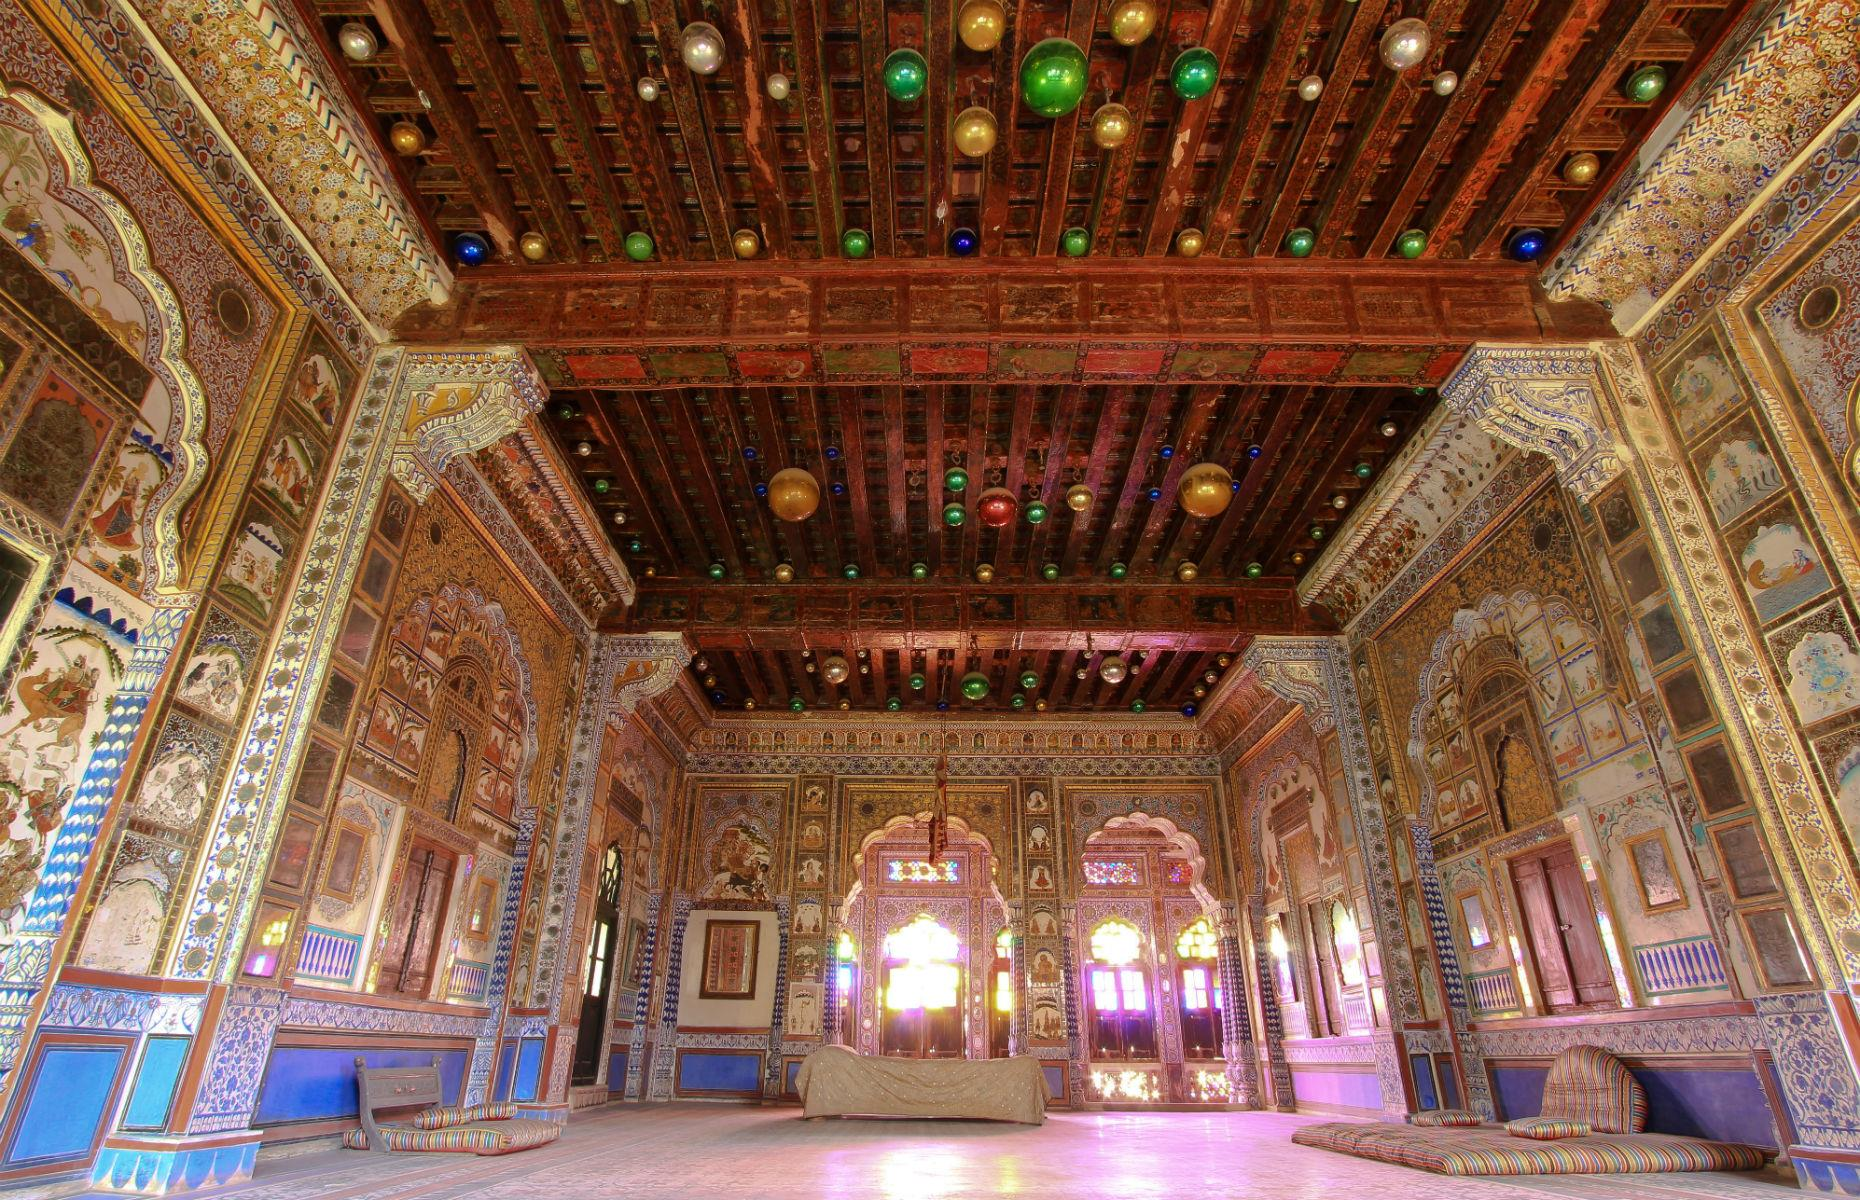 Slide 11 of 61: The fort was embellished and expanded over about five centuries and the result is a sumptuous hodgepodge of architectural styles. Palace rooms burst with colored glass, mirrors and mosaics too – one of the most beautiful is the opulent Phool Maha or Flower Palace Room.